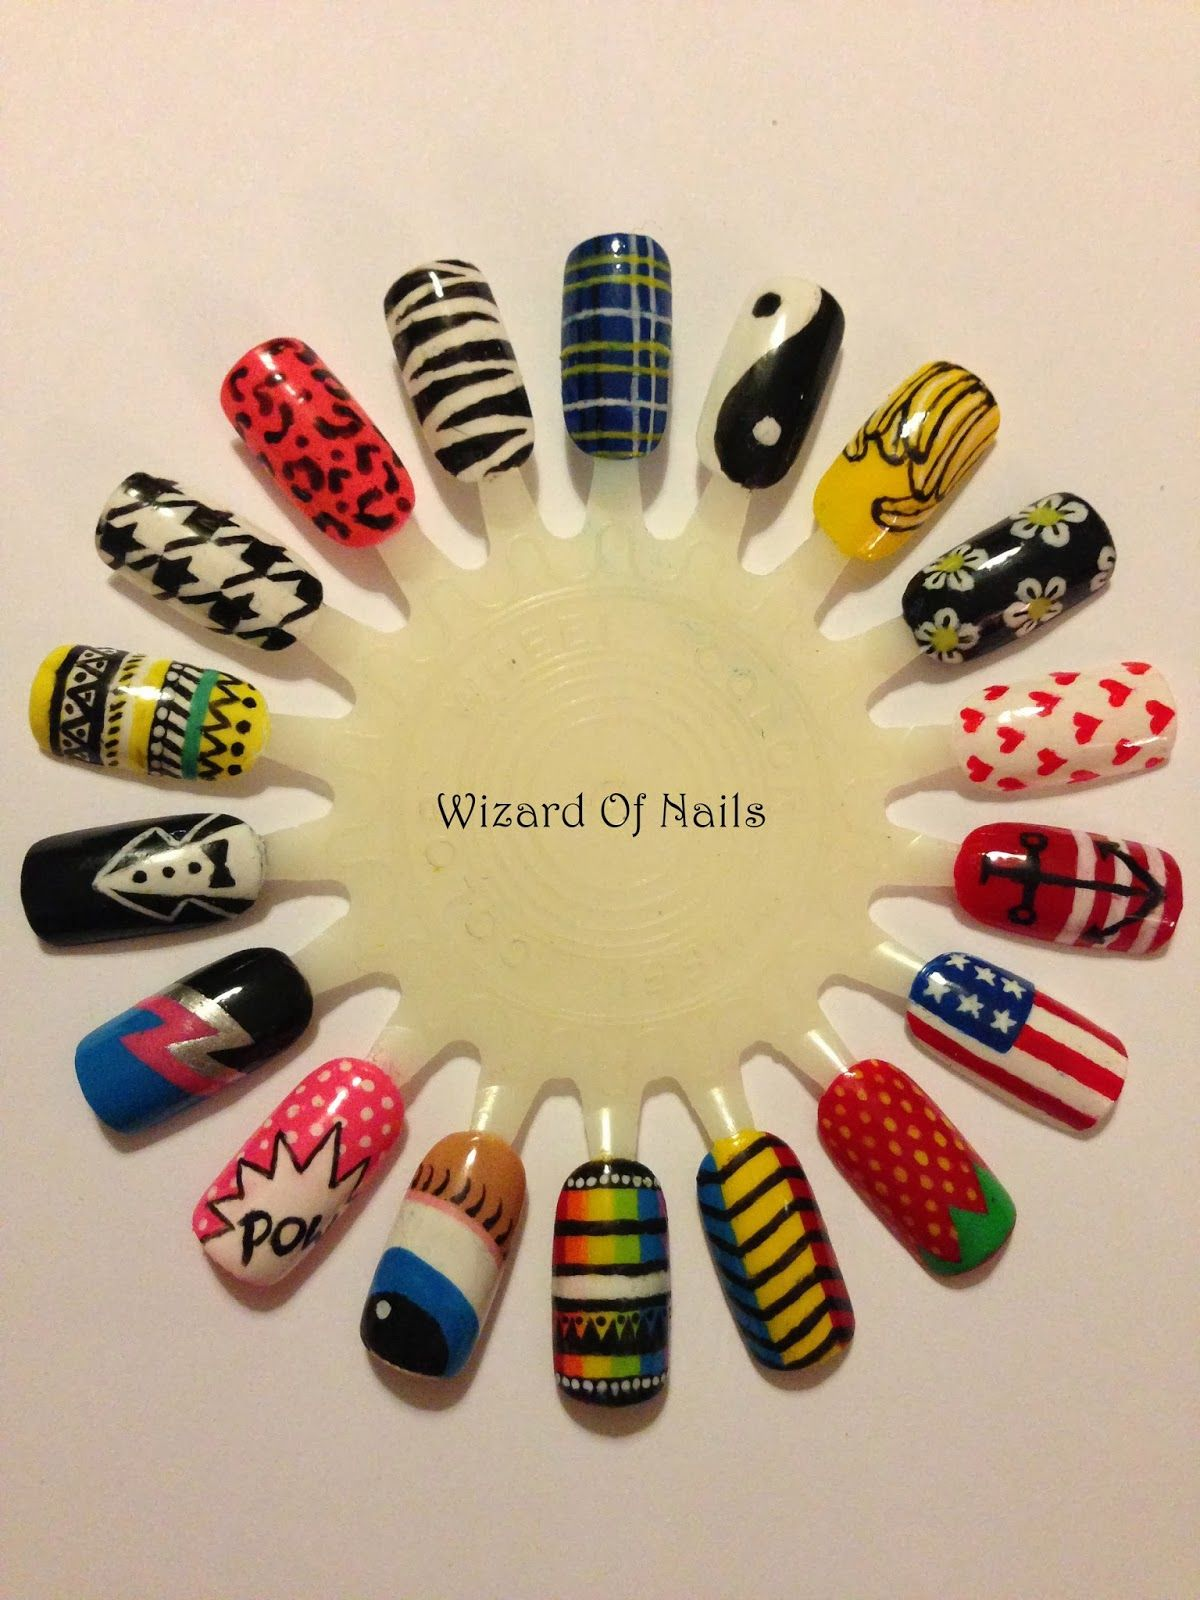 Wah Nails nail art wheel | Nail It | Pinterest | Nail art wheel ...